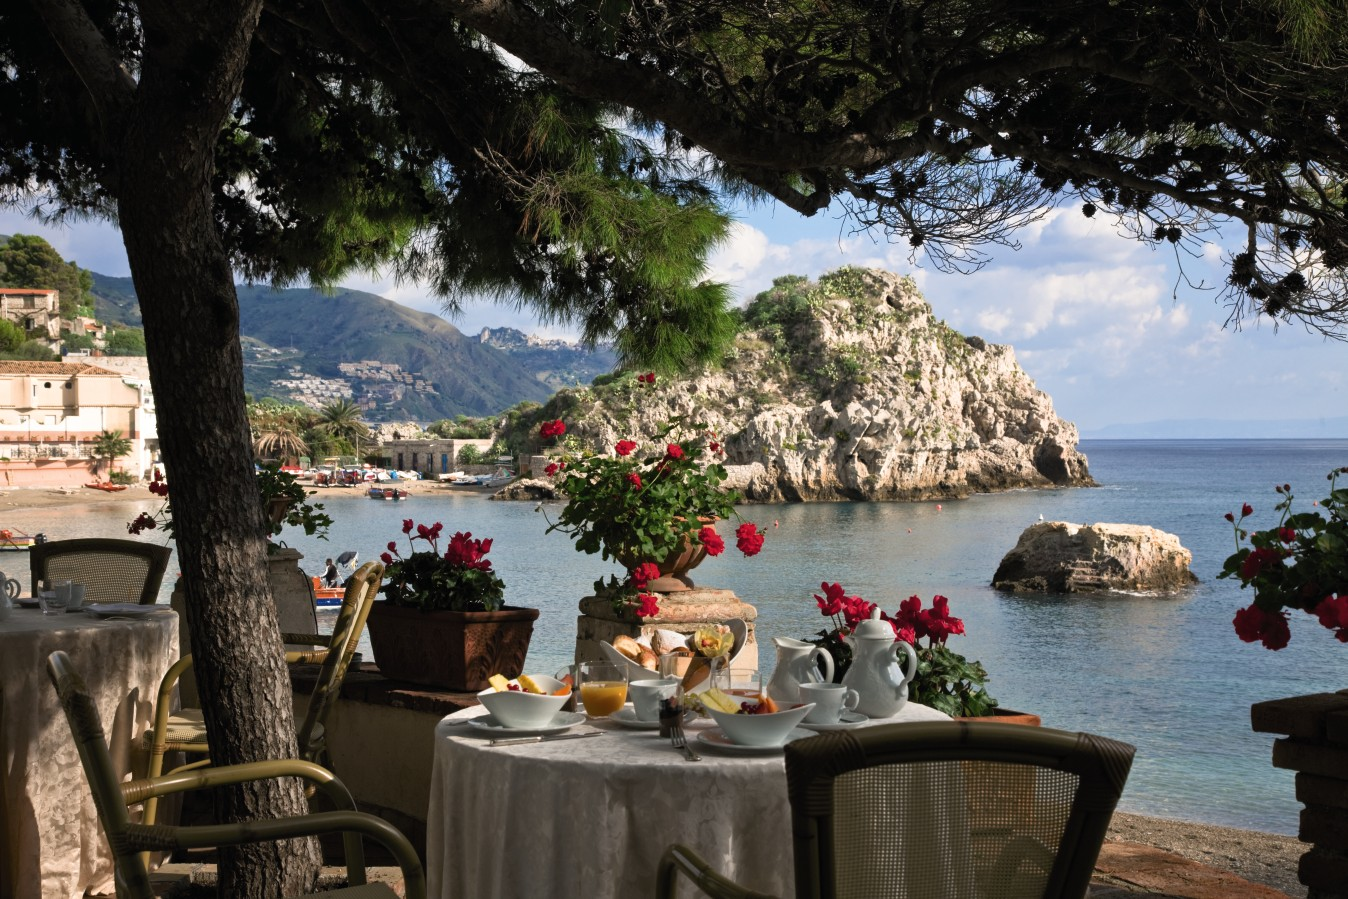 The Oliviero Restaurant, at the Belmond Villa Sant'Andrea, is famous for its seafood specialties. The hotel enjoys a prime slice of Sicilian real estate.